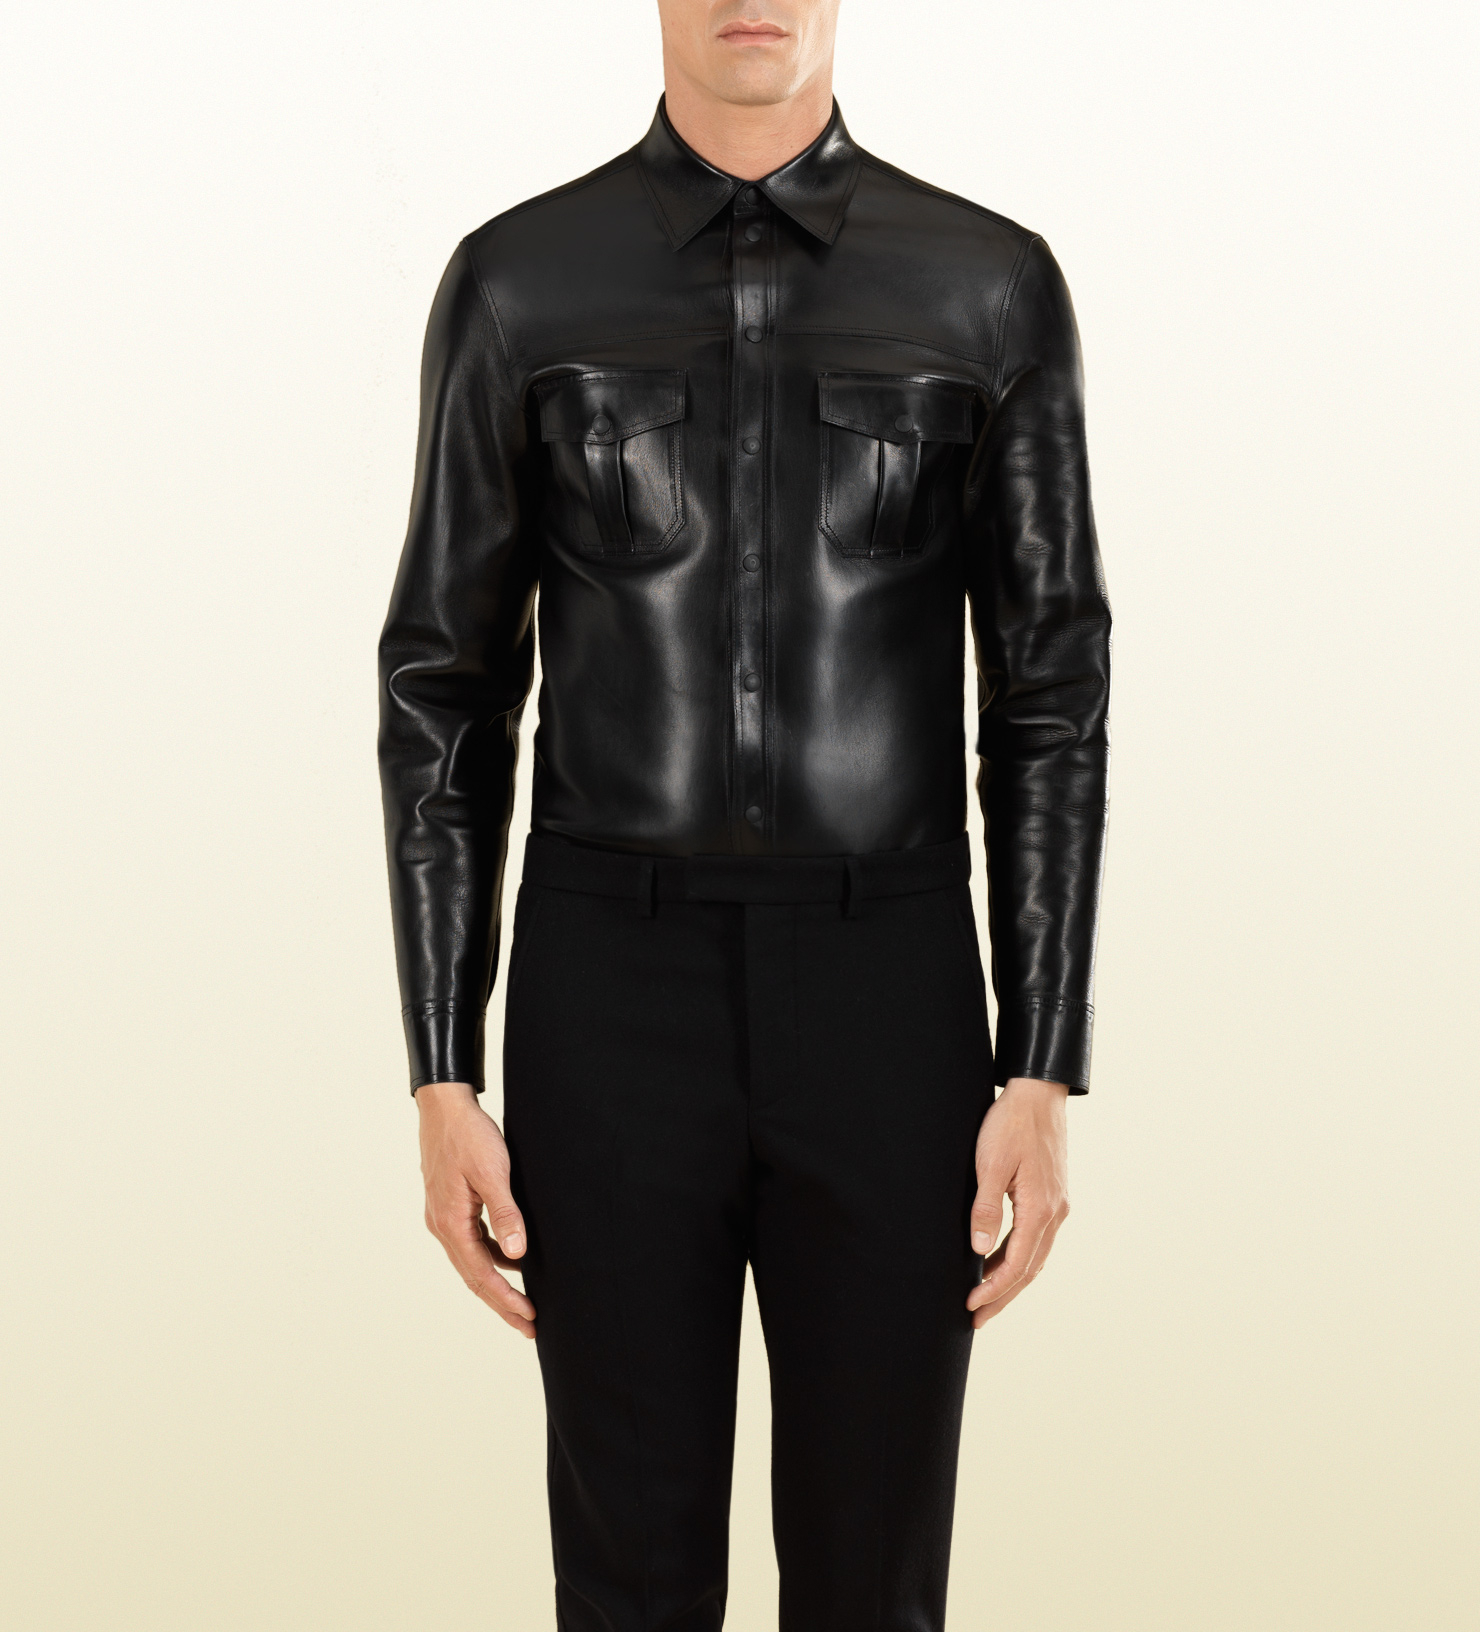 lyst gucci leather buttondown shirt in black for men. Black Bedroom Furniture Sets. Home Design Ideas